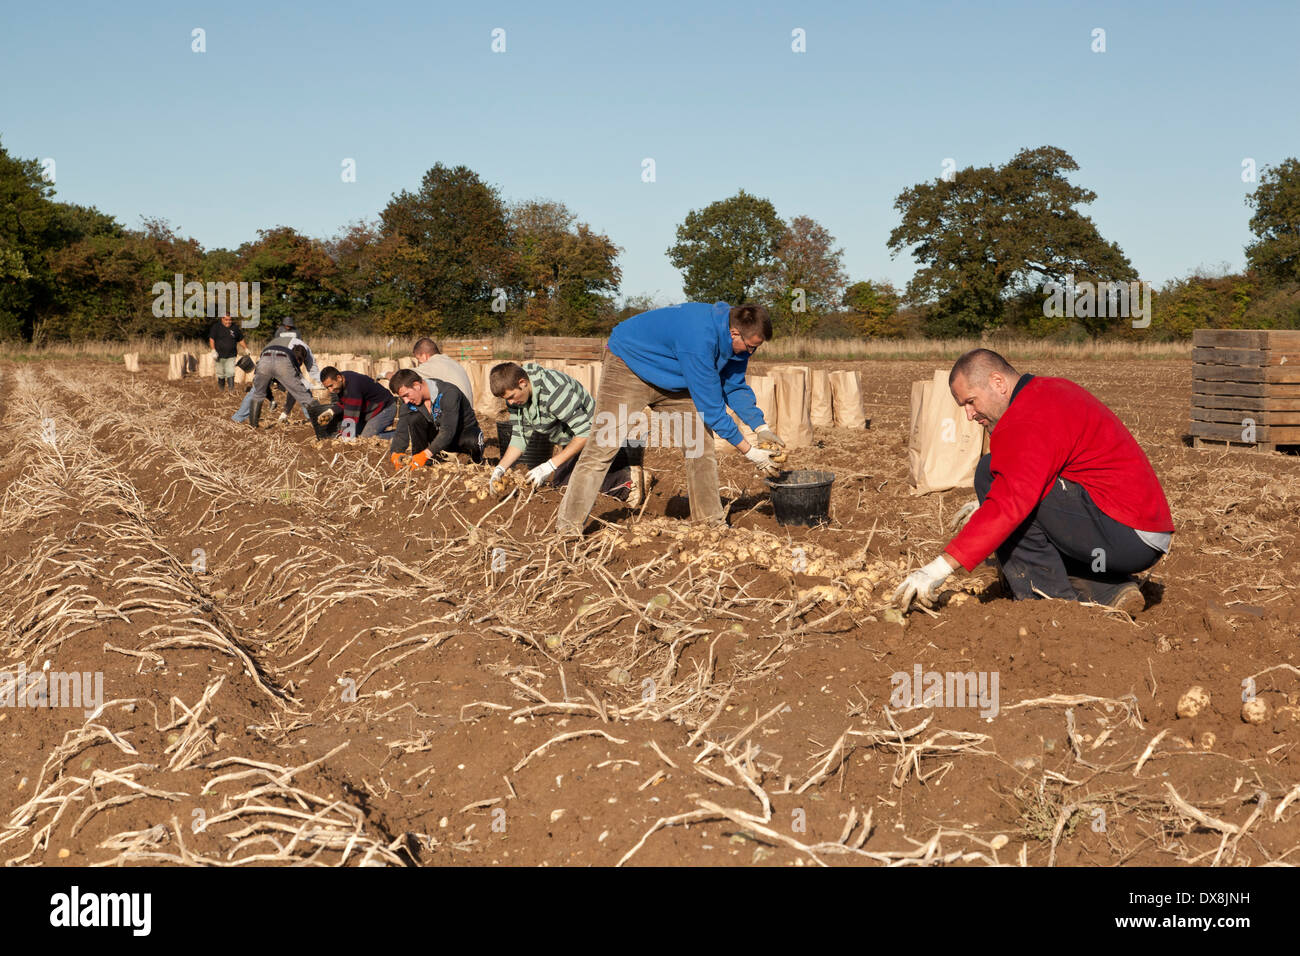 Potatoes being harvested by foreign seasonal workers - Stock Image